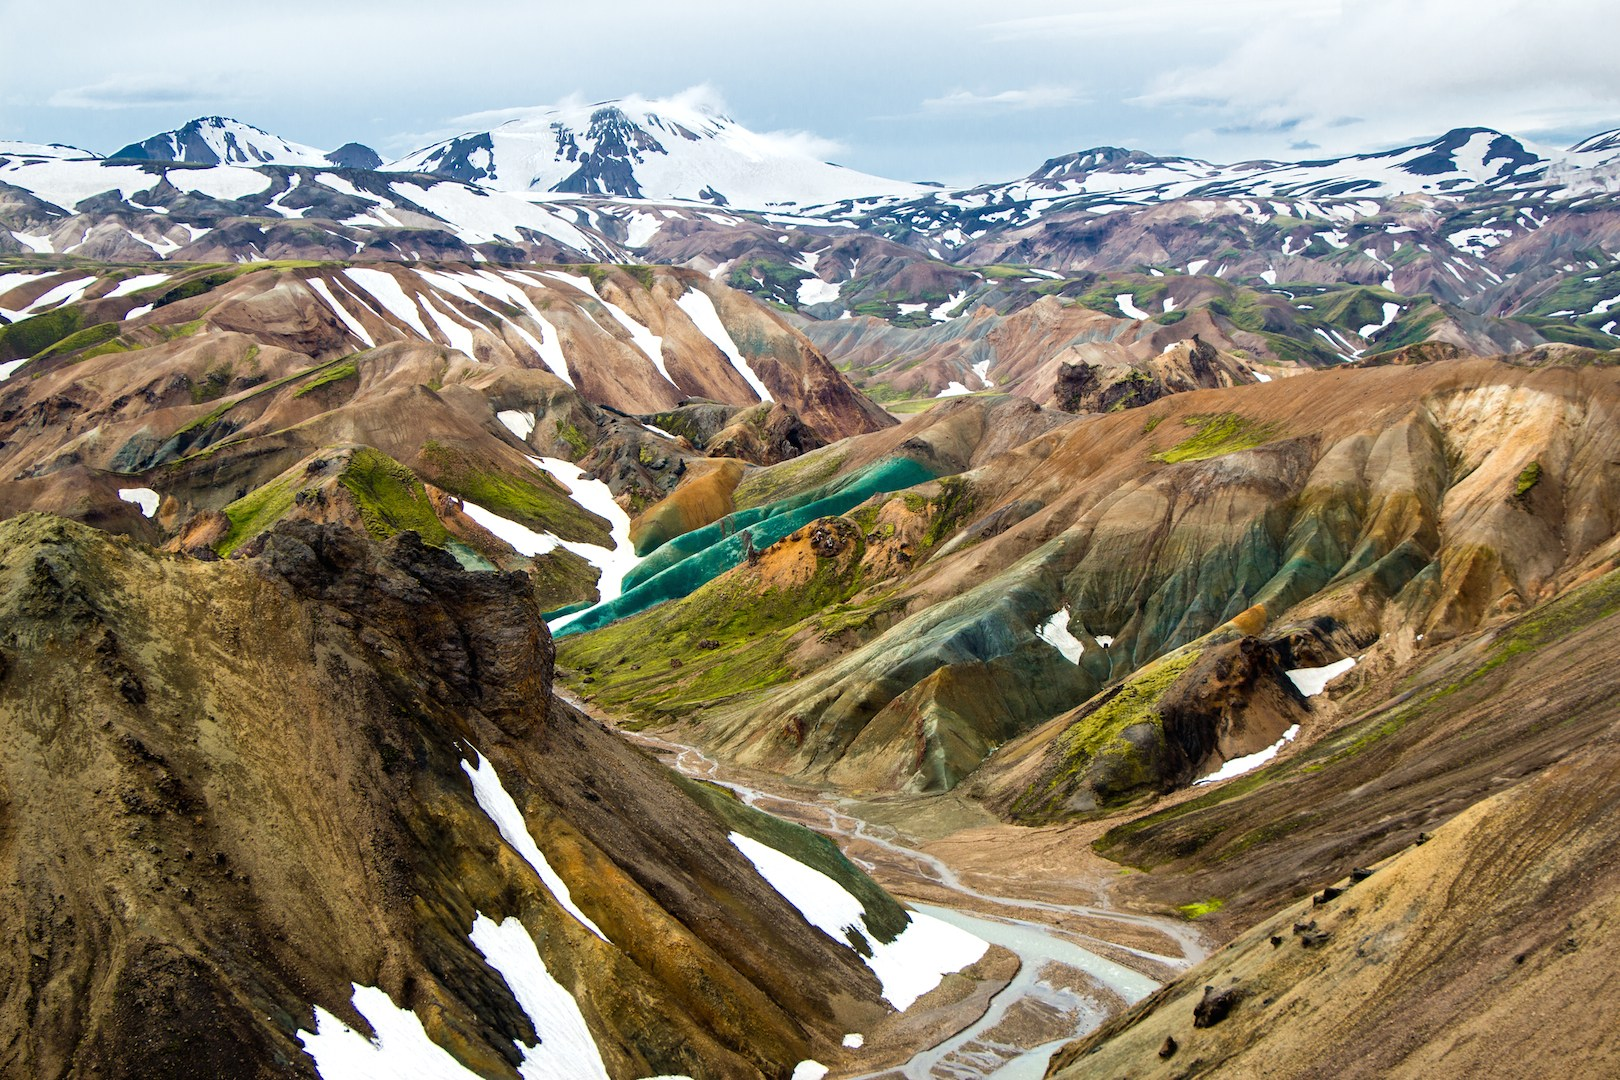 You'll hike through the stunning Landmannalaugar area on a hiking tour of the Highlands